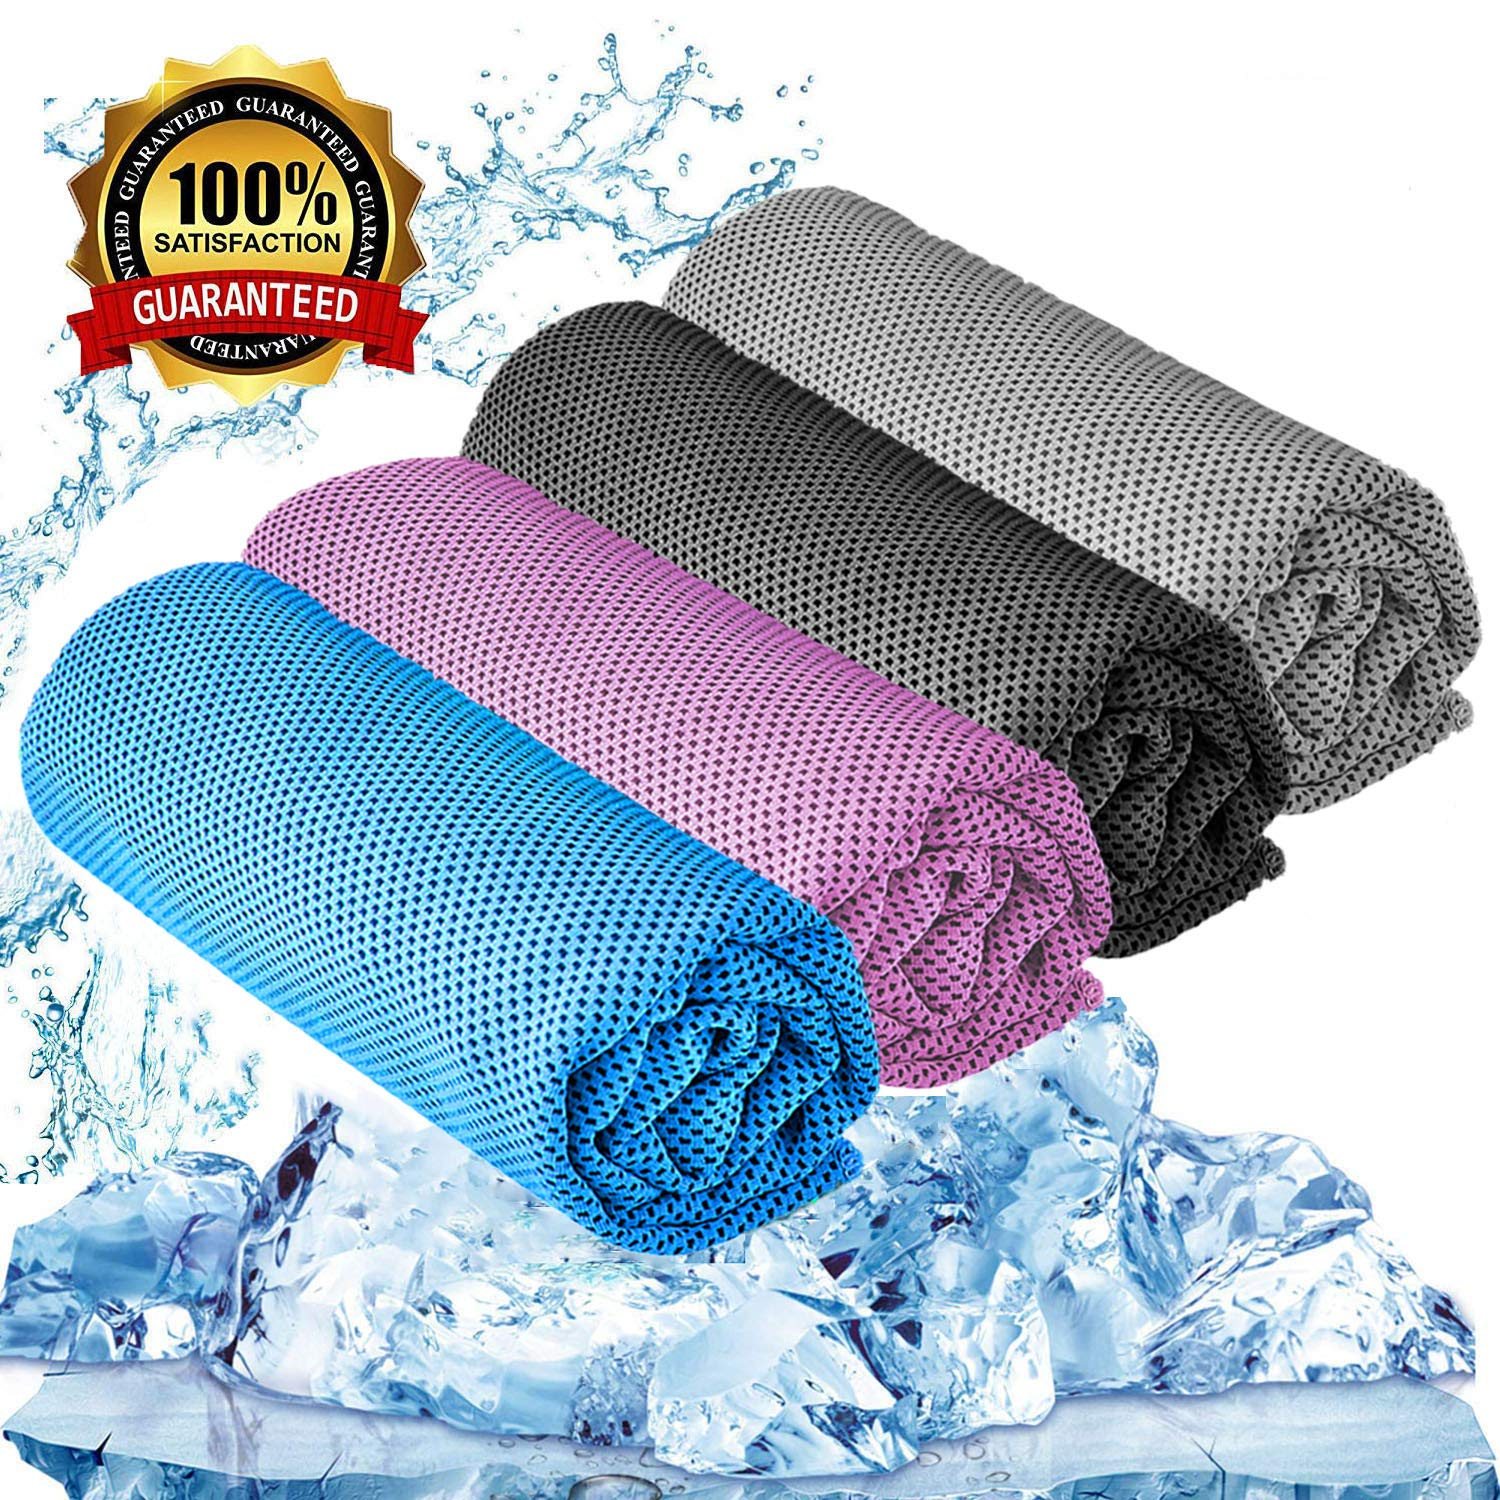 """YQXCC Cooling Towel 3 Pcs (47""""x12"""") Microfiber Towel for Instant Cooling Relief, Cool Cold Towel for Yoga Golf Travel Gym Sport Camping Football & Outdoor Sports"""